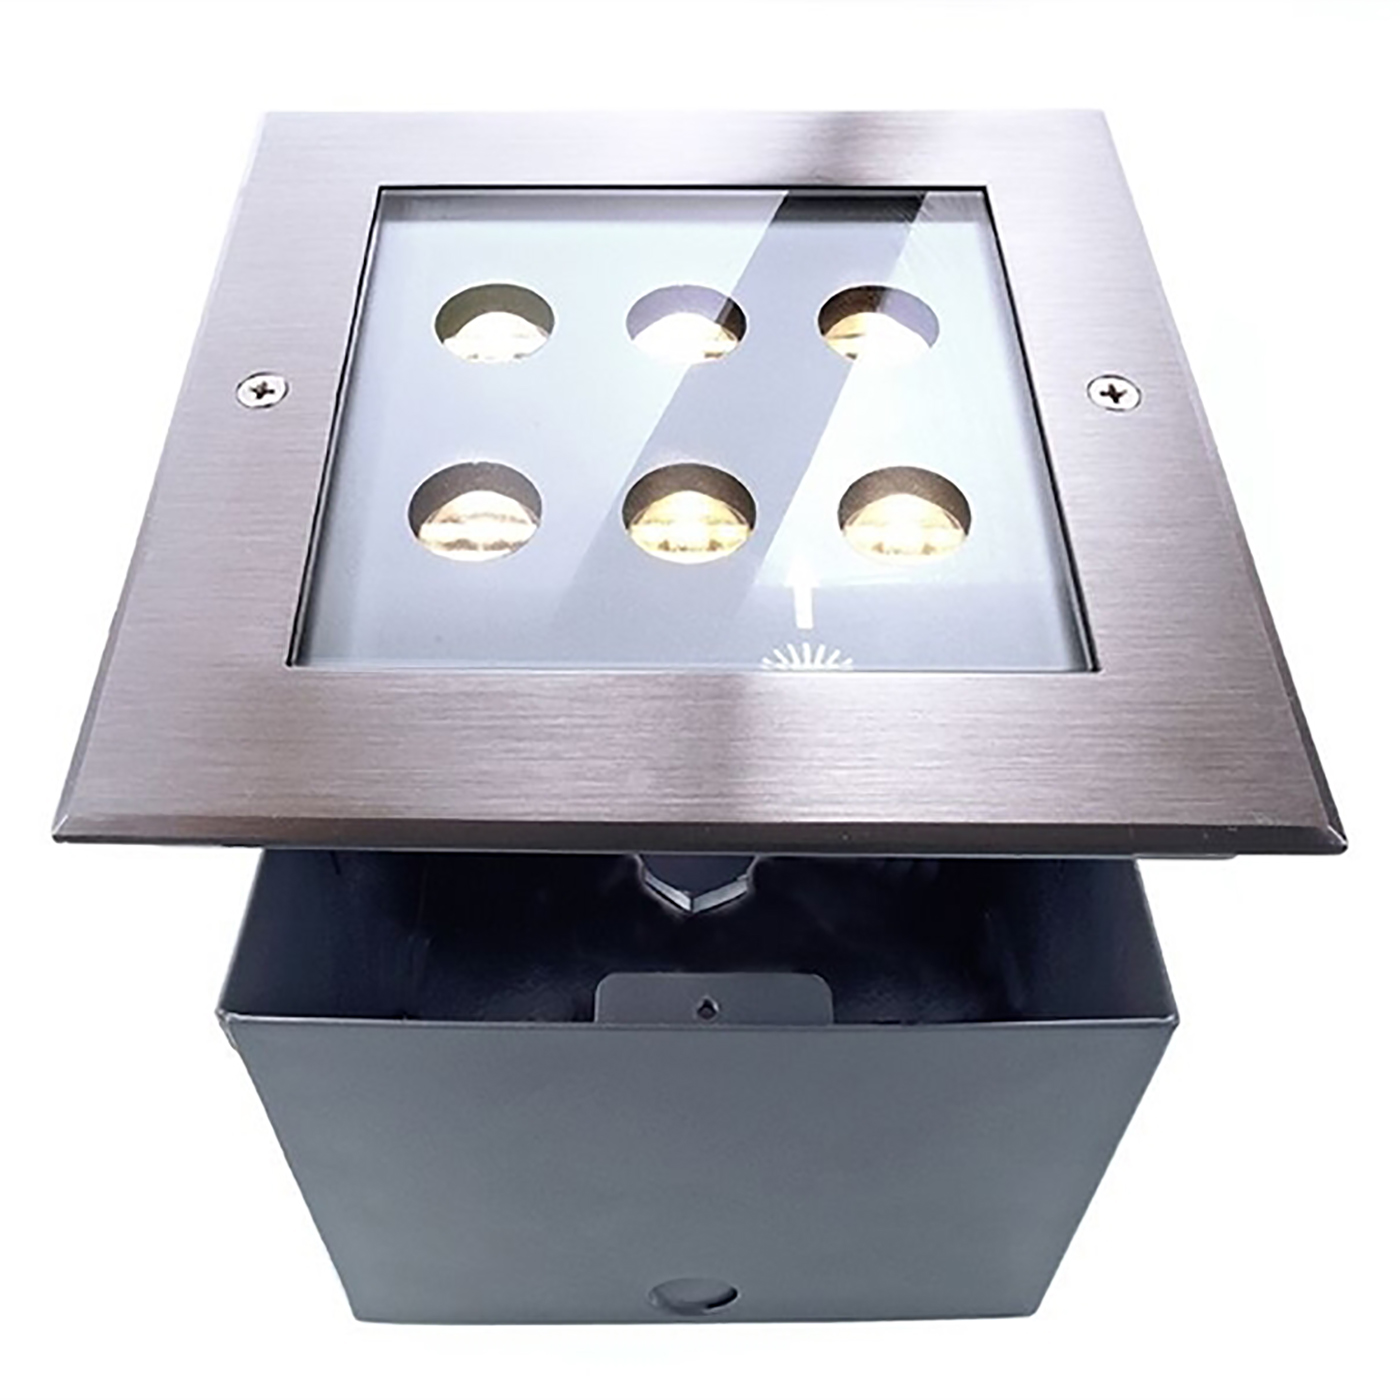 Calpestabile quadrato incasso pavimento terreno led 6w faretto IP67 SPOT light